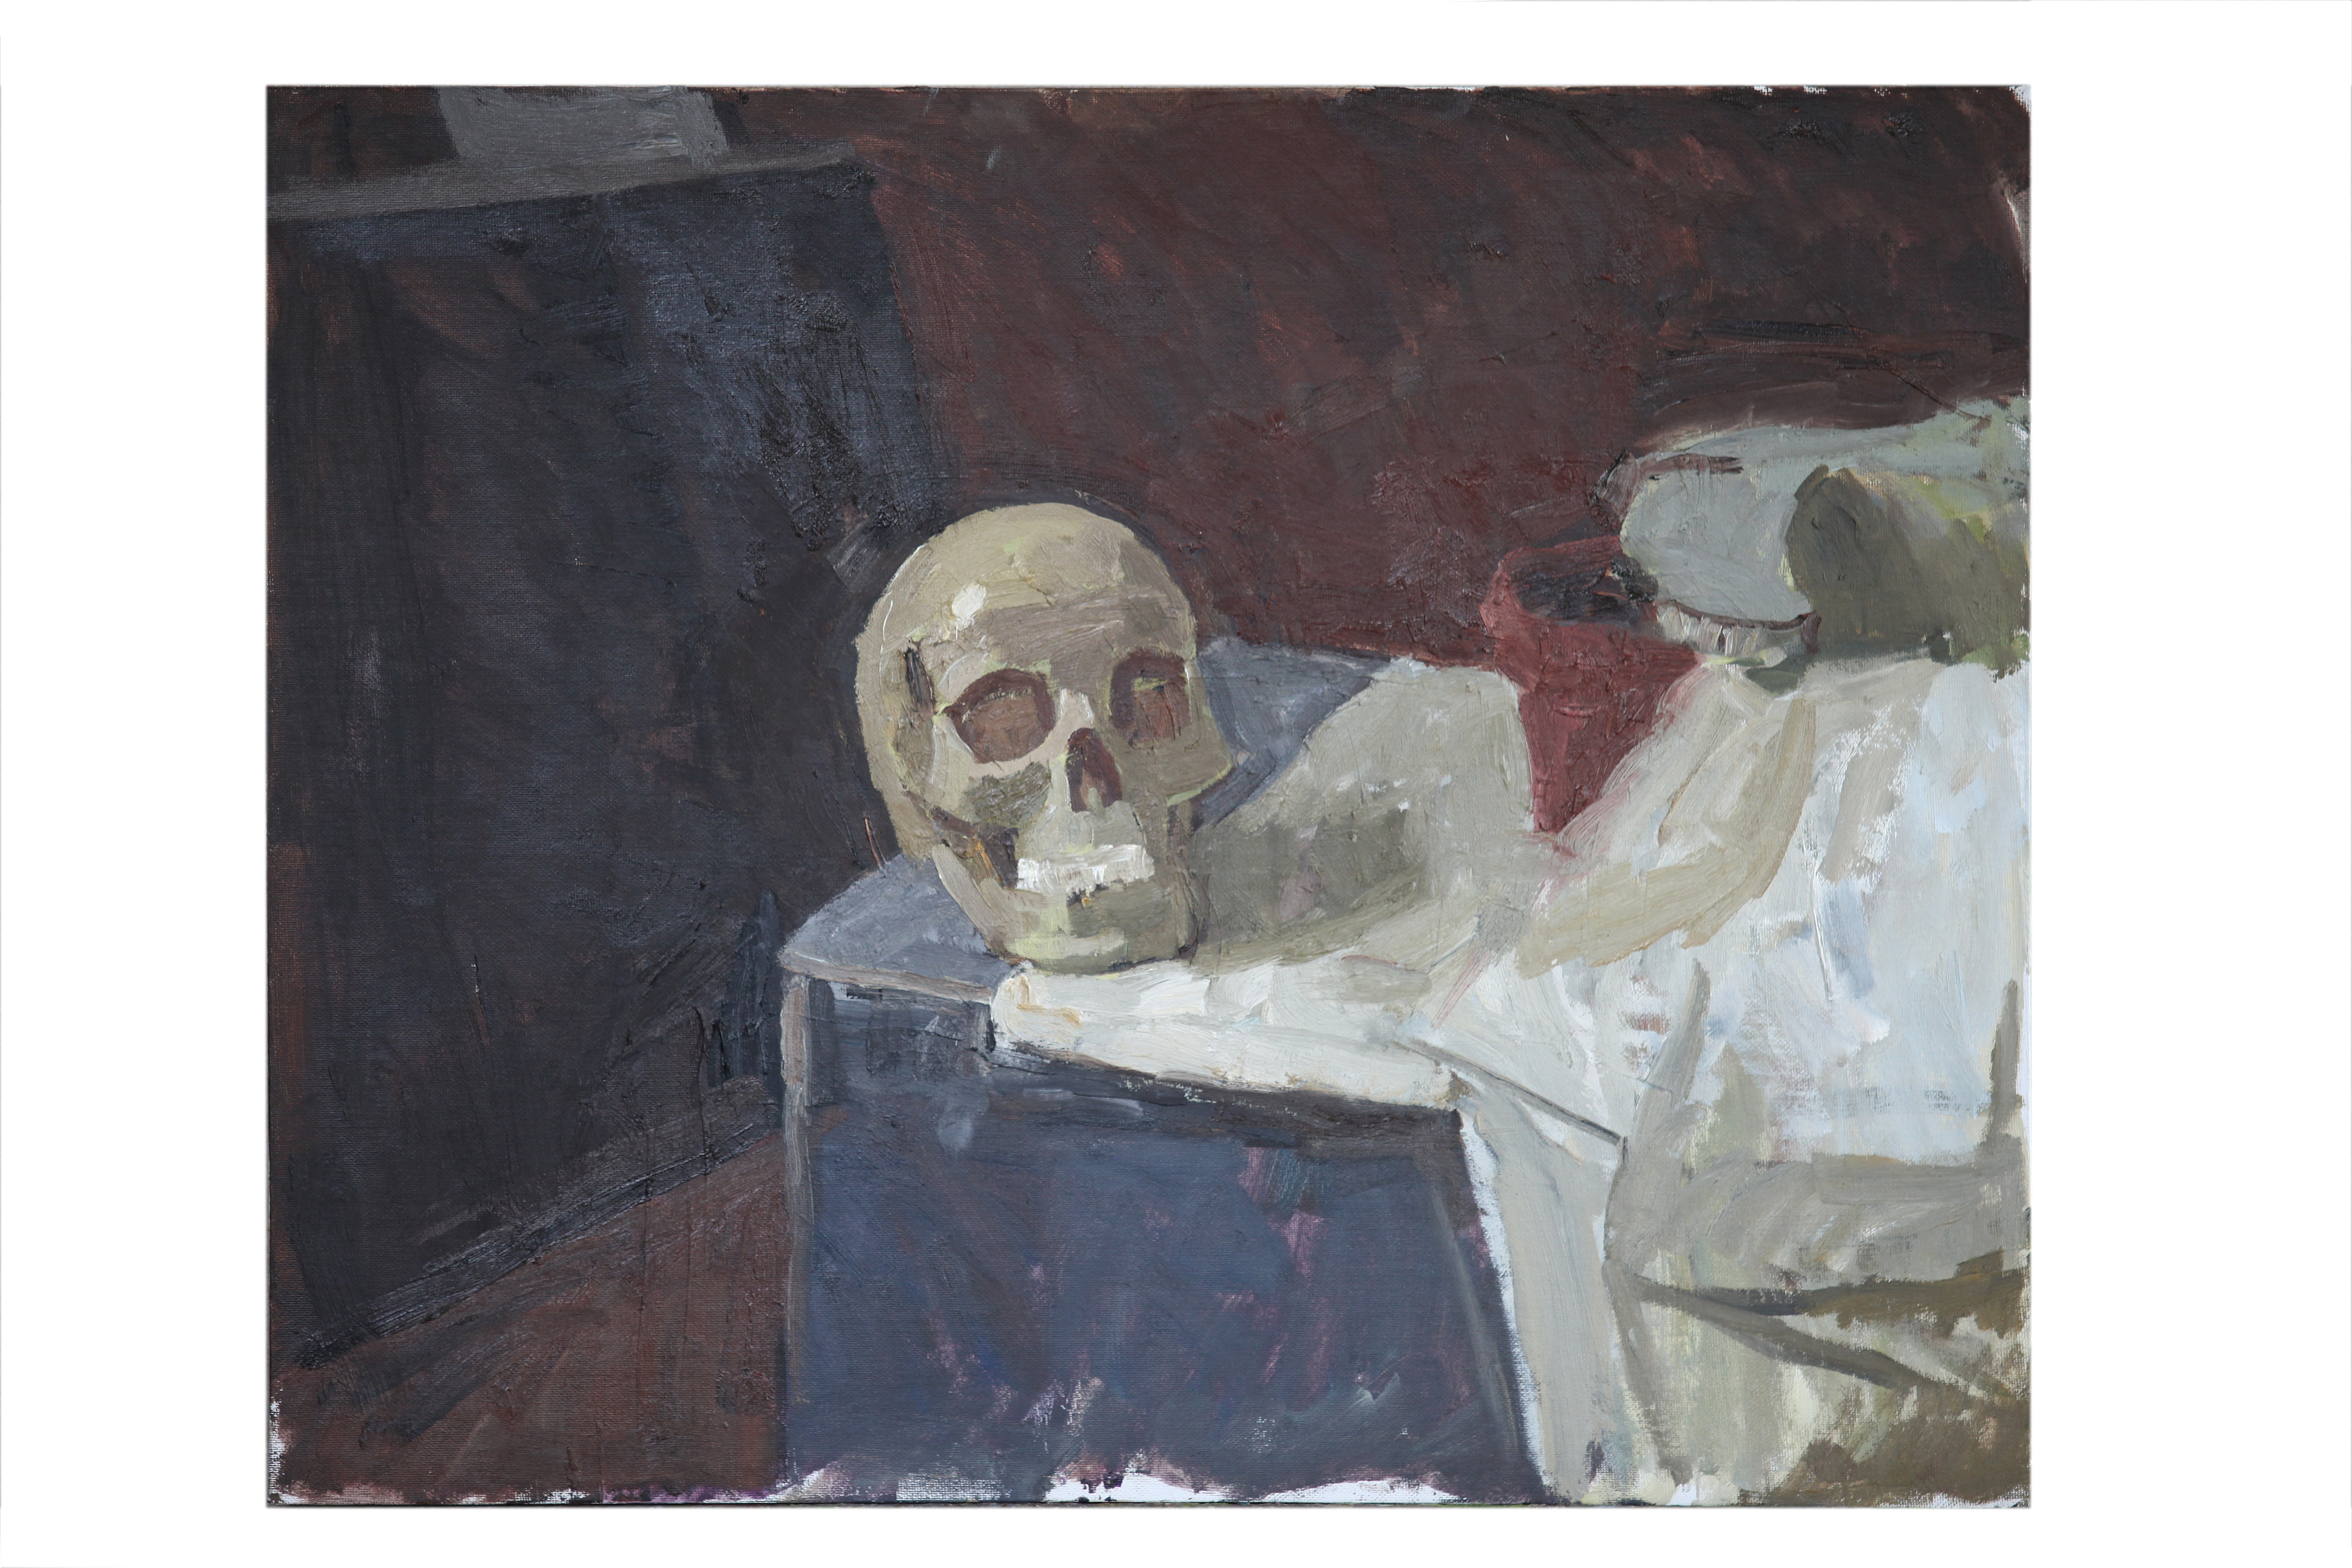 Skull and white cloth.